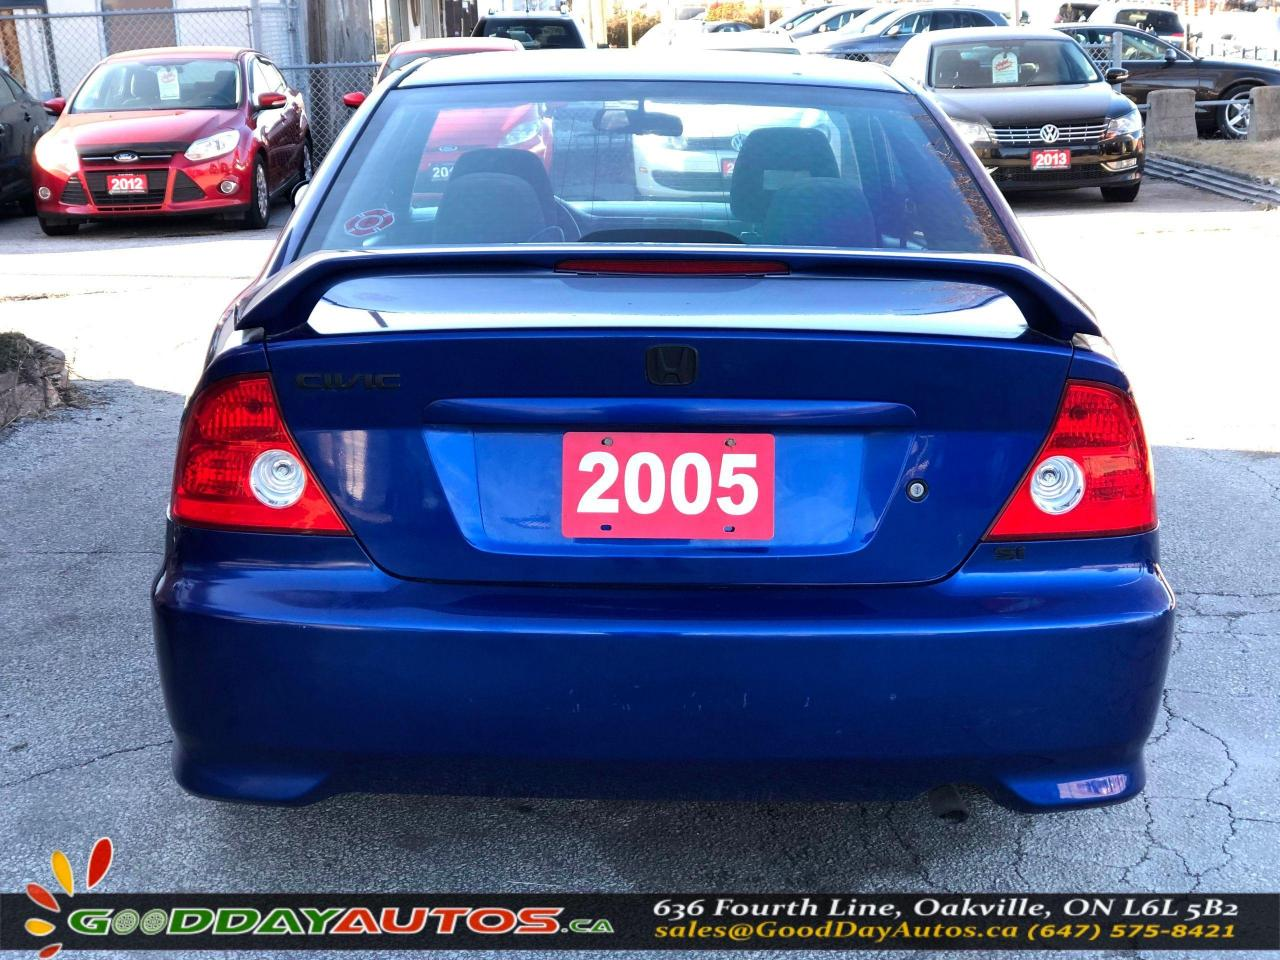 2005 Honda Civic